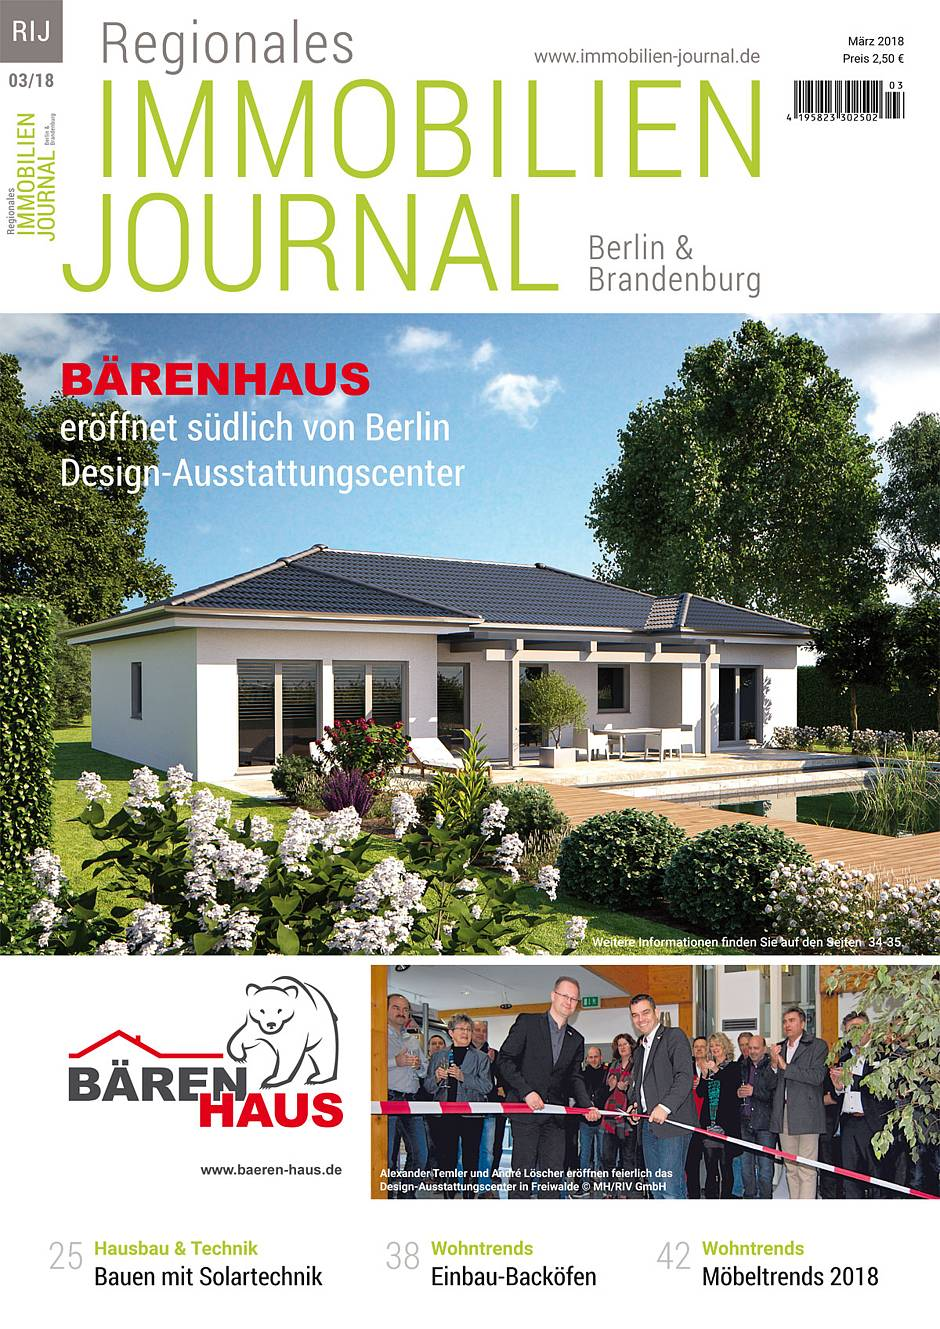 Regionales Immobilien Journal Berlin & Brandenburg März 2018